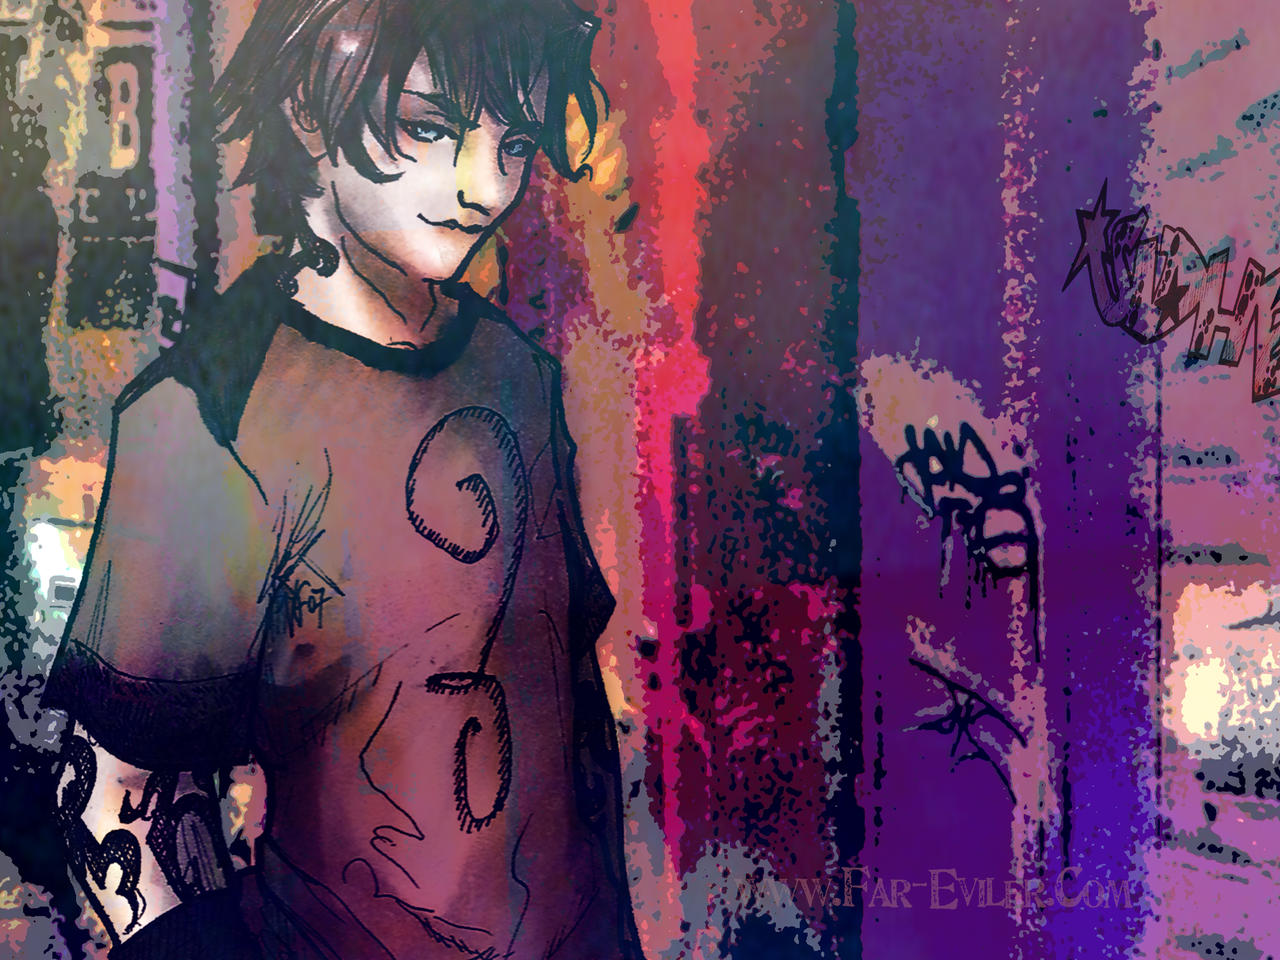 TMI - ALEC-WALLPAPER by far-eviler